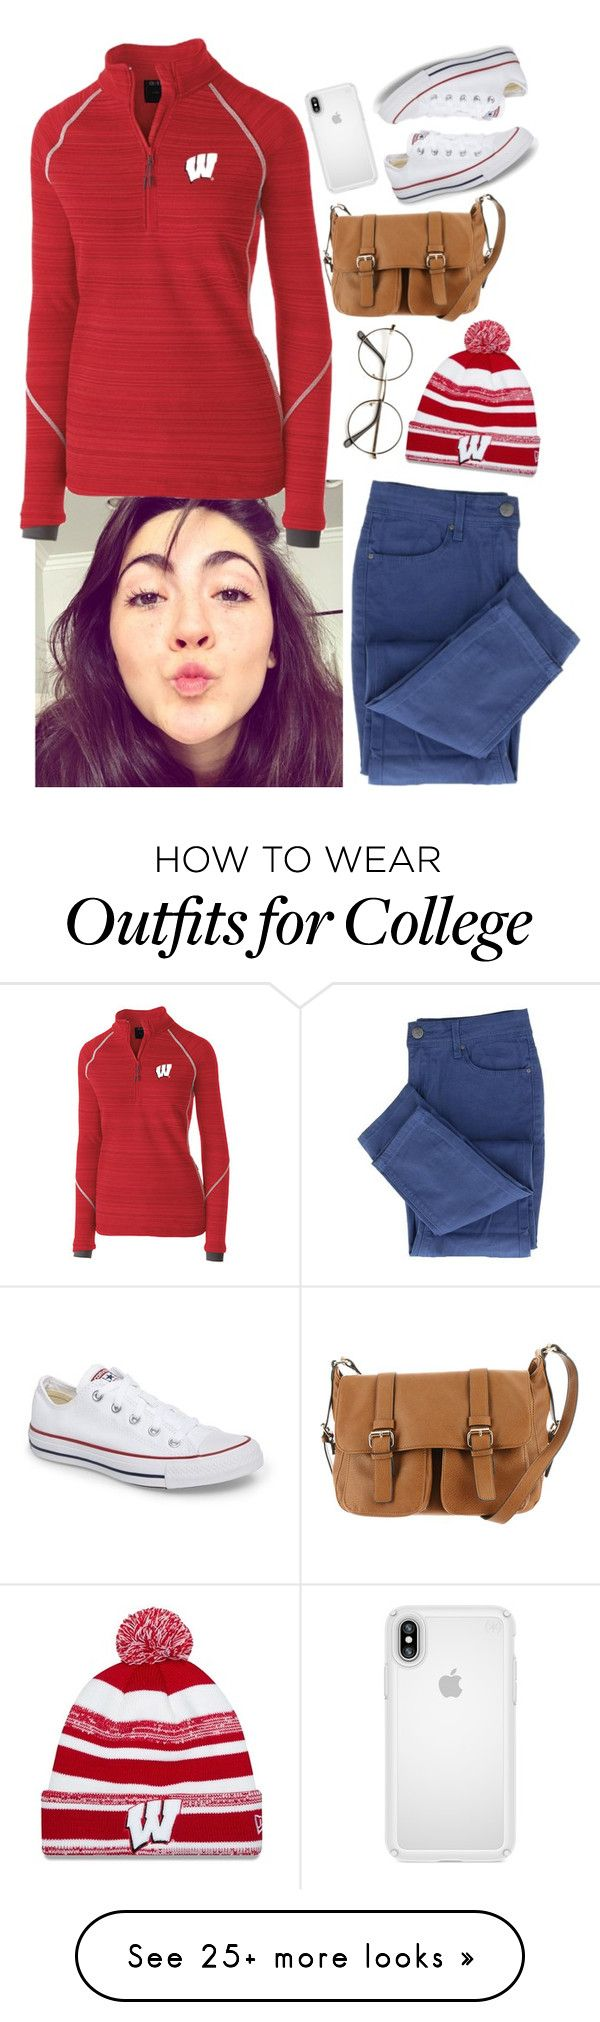 """""""""""What the puck?"""" -Clove"""" by amazingraciee on Polyvore featuring New Era, MMS Design Studio, Speck and Converse"""